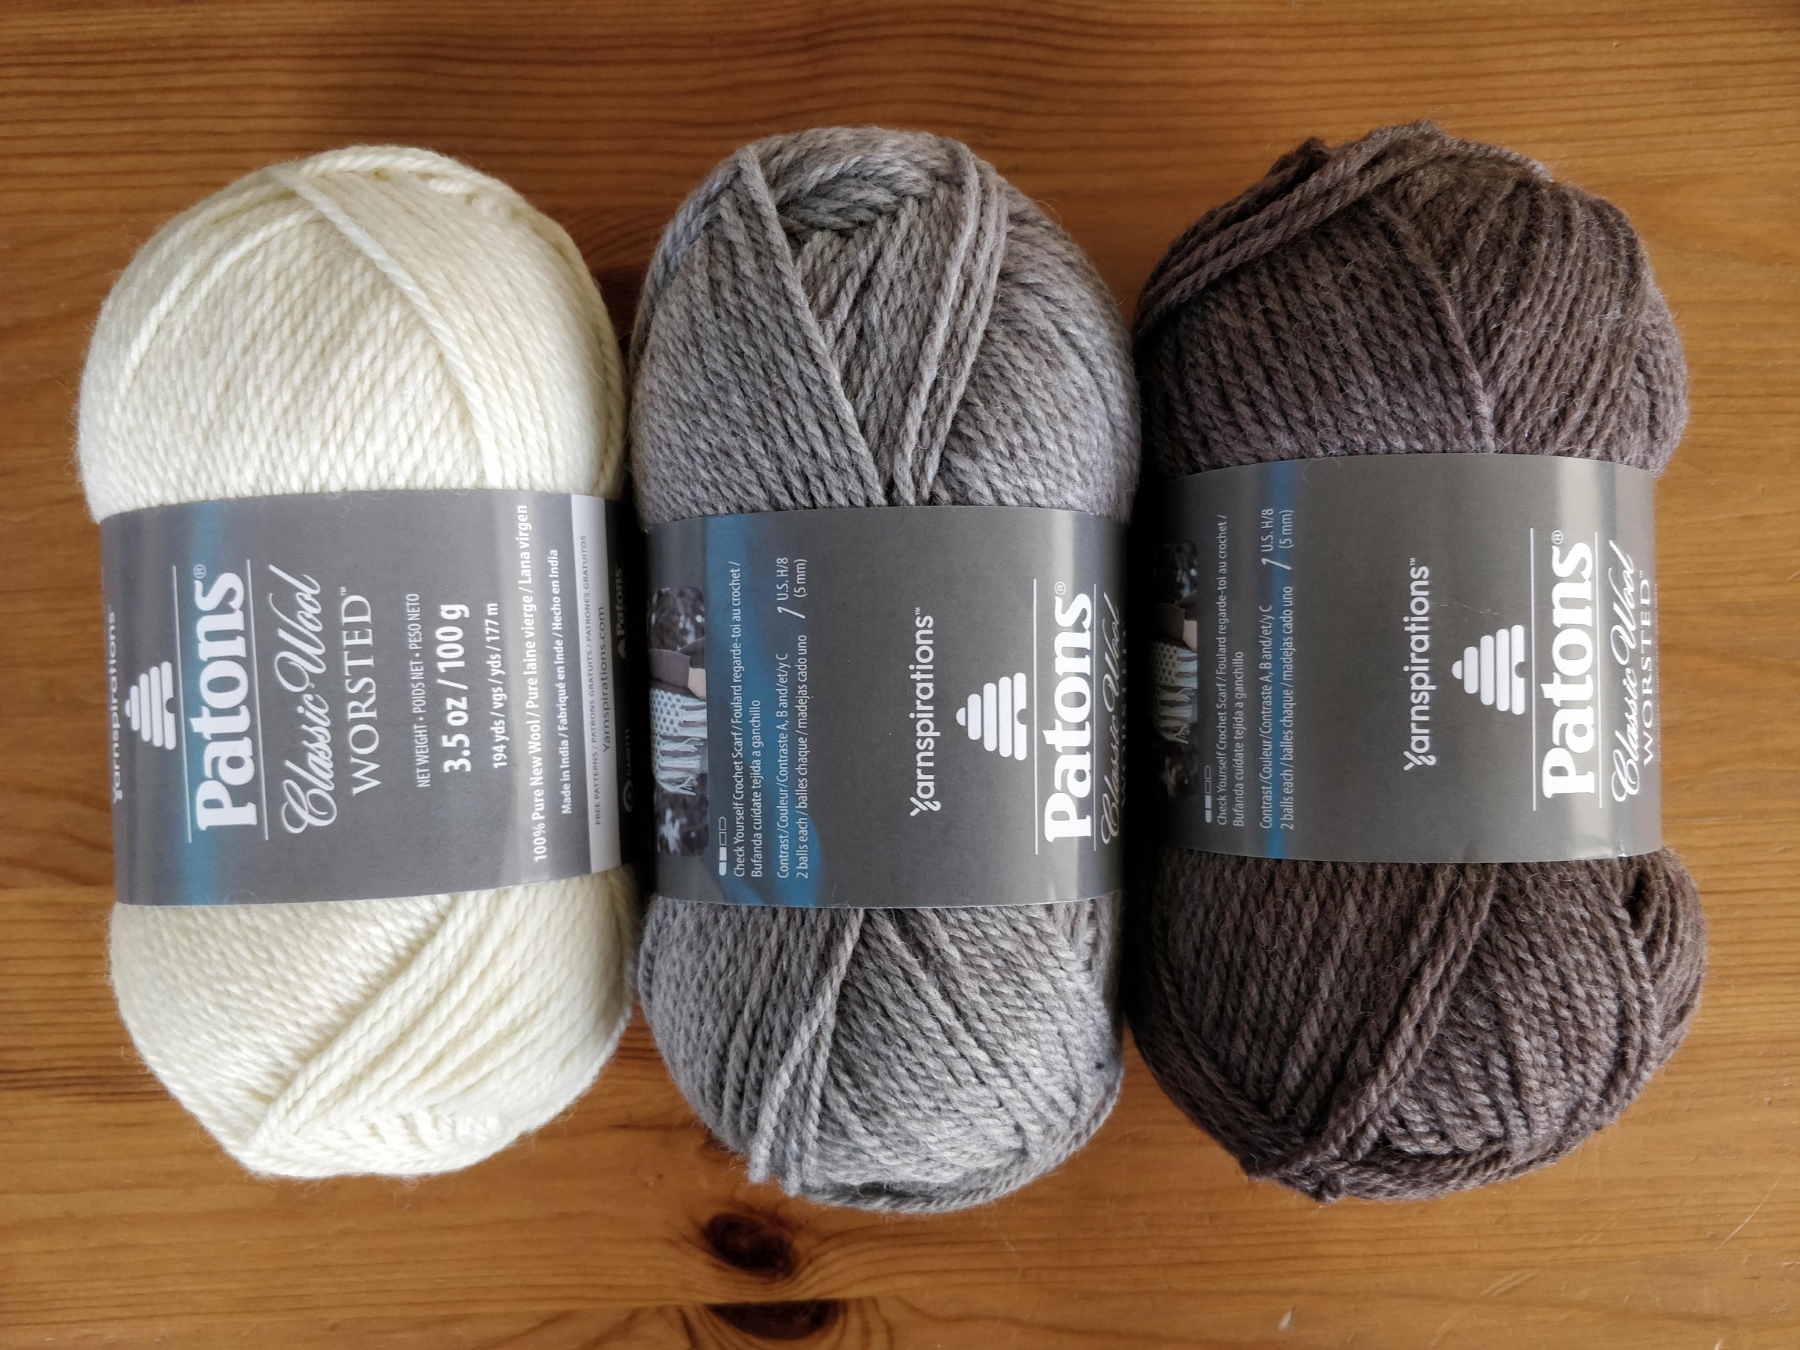 Three balls of worsted weight wool in cream, light grayish tan, and brown colours.